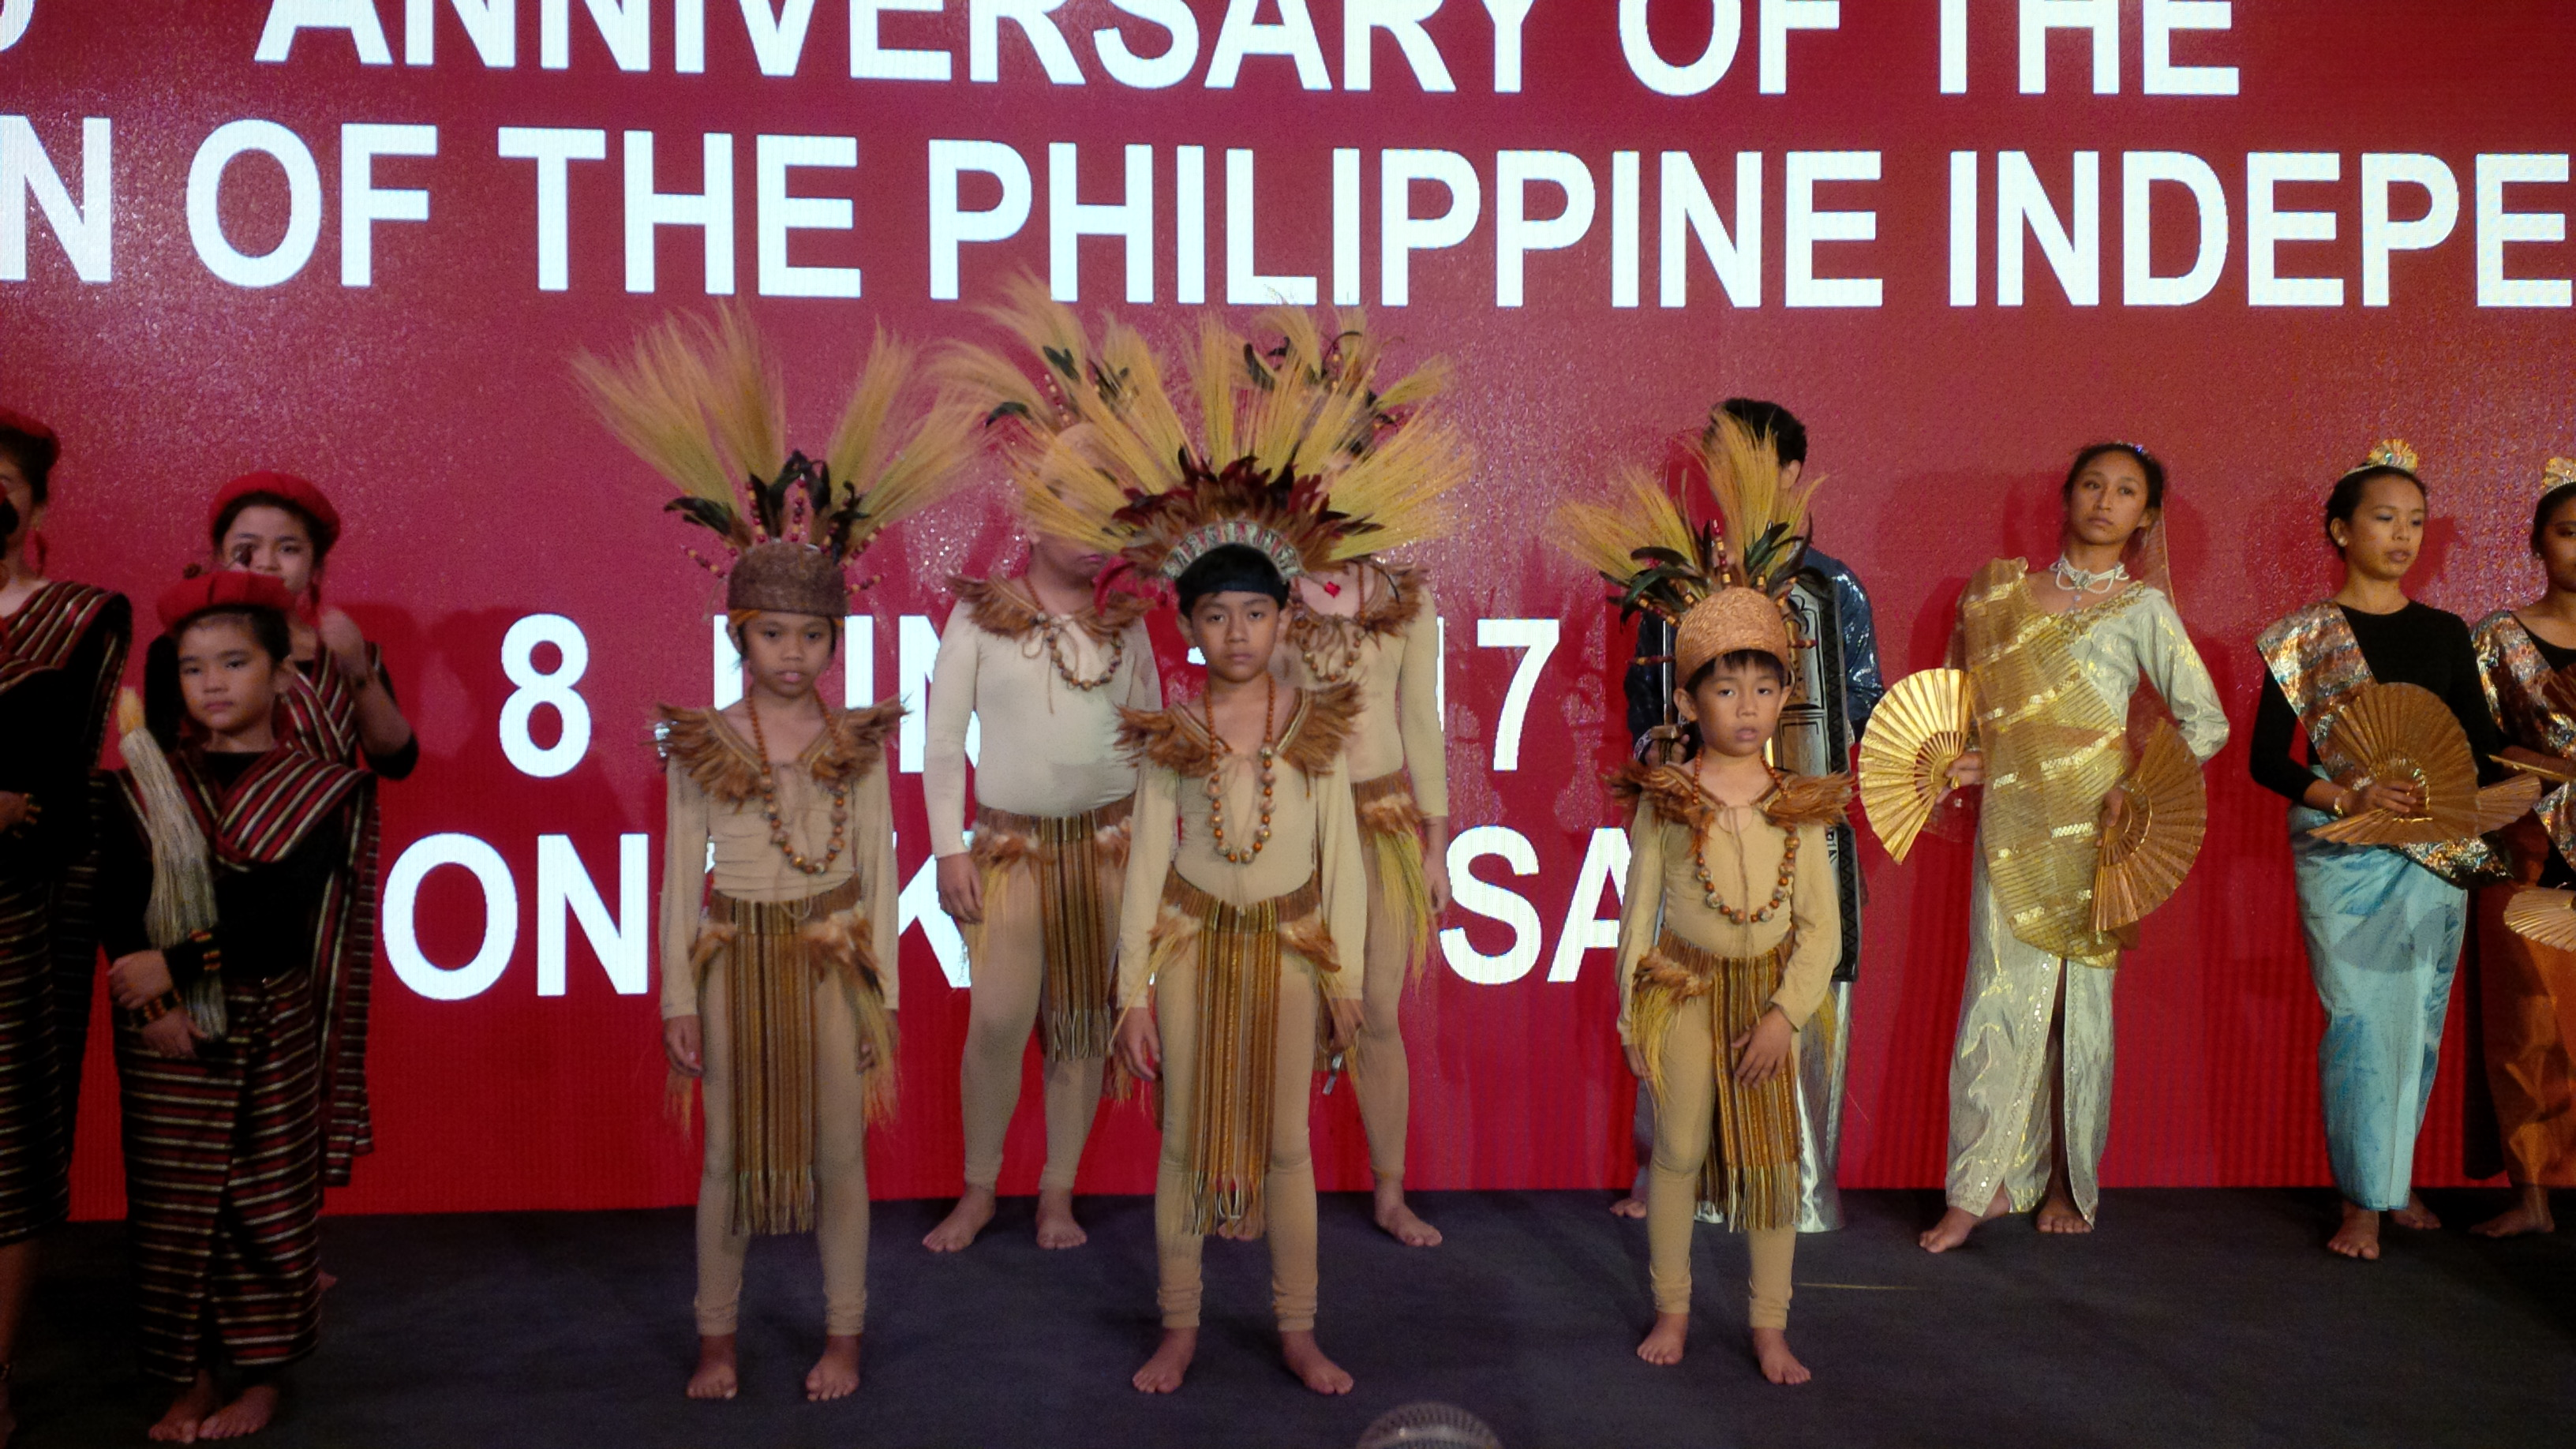 Reportage: Philippines National Day 2017